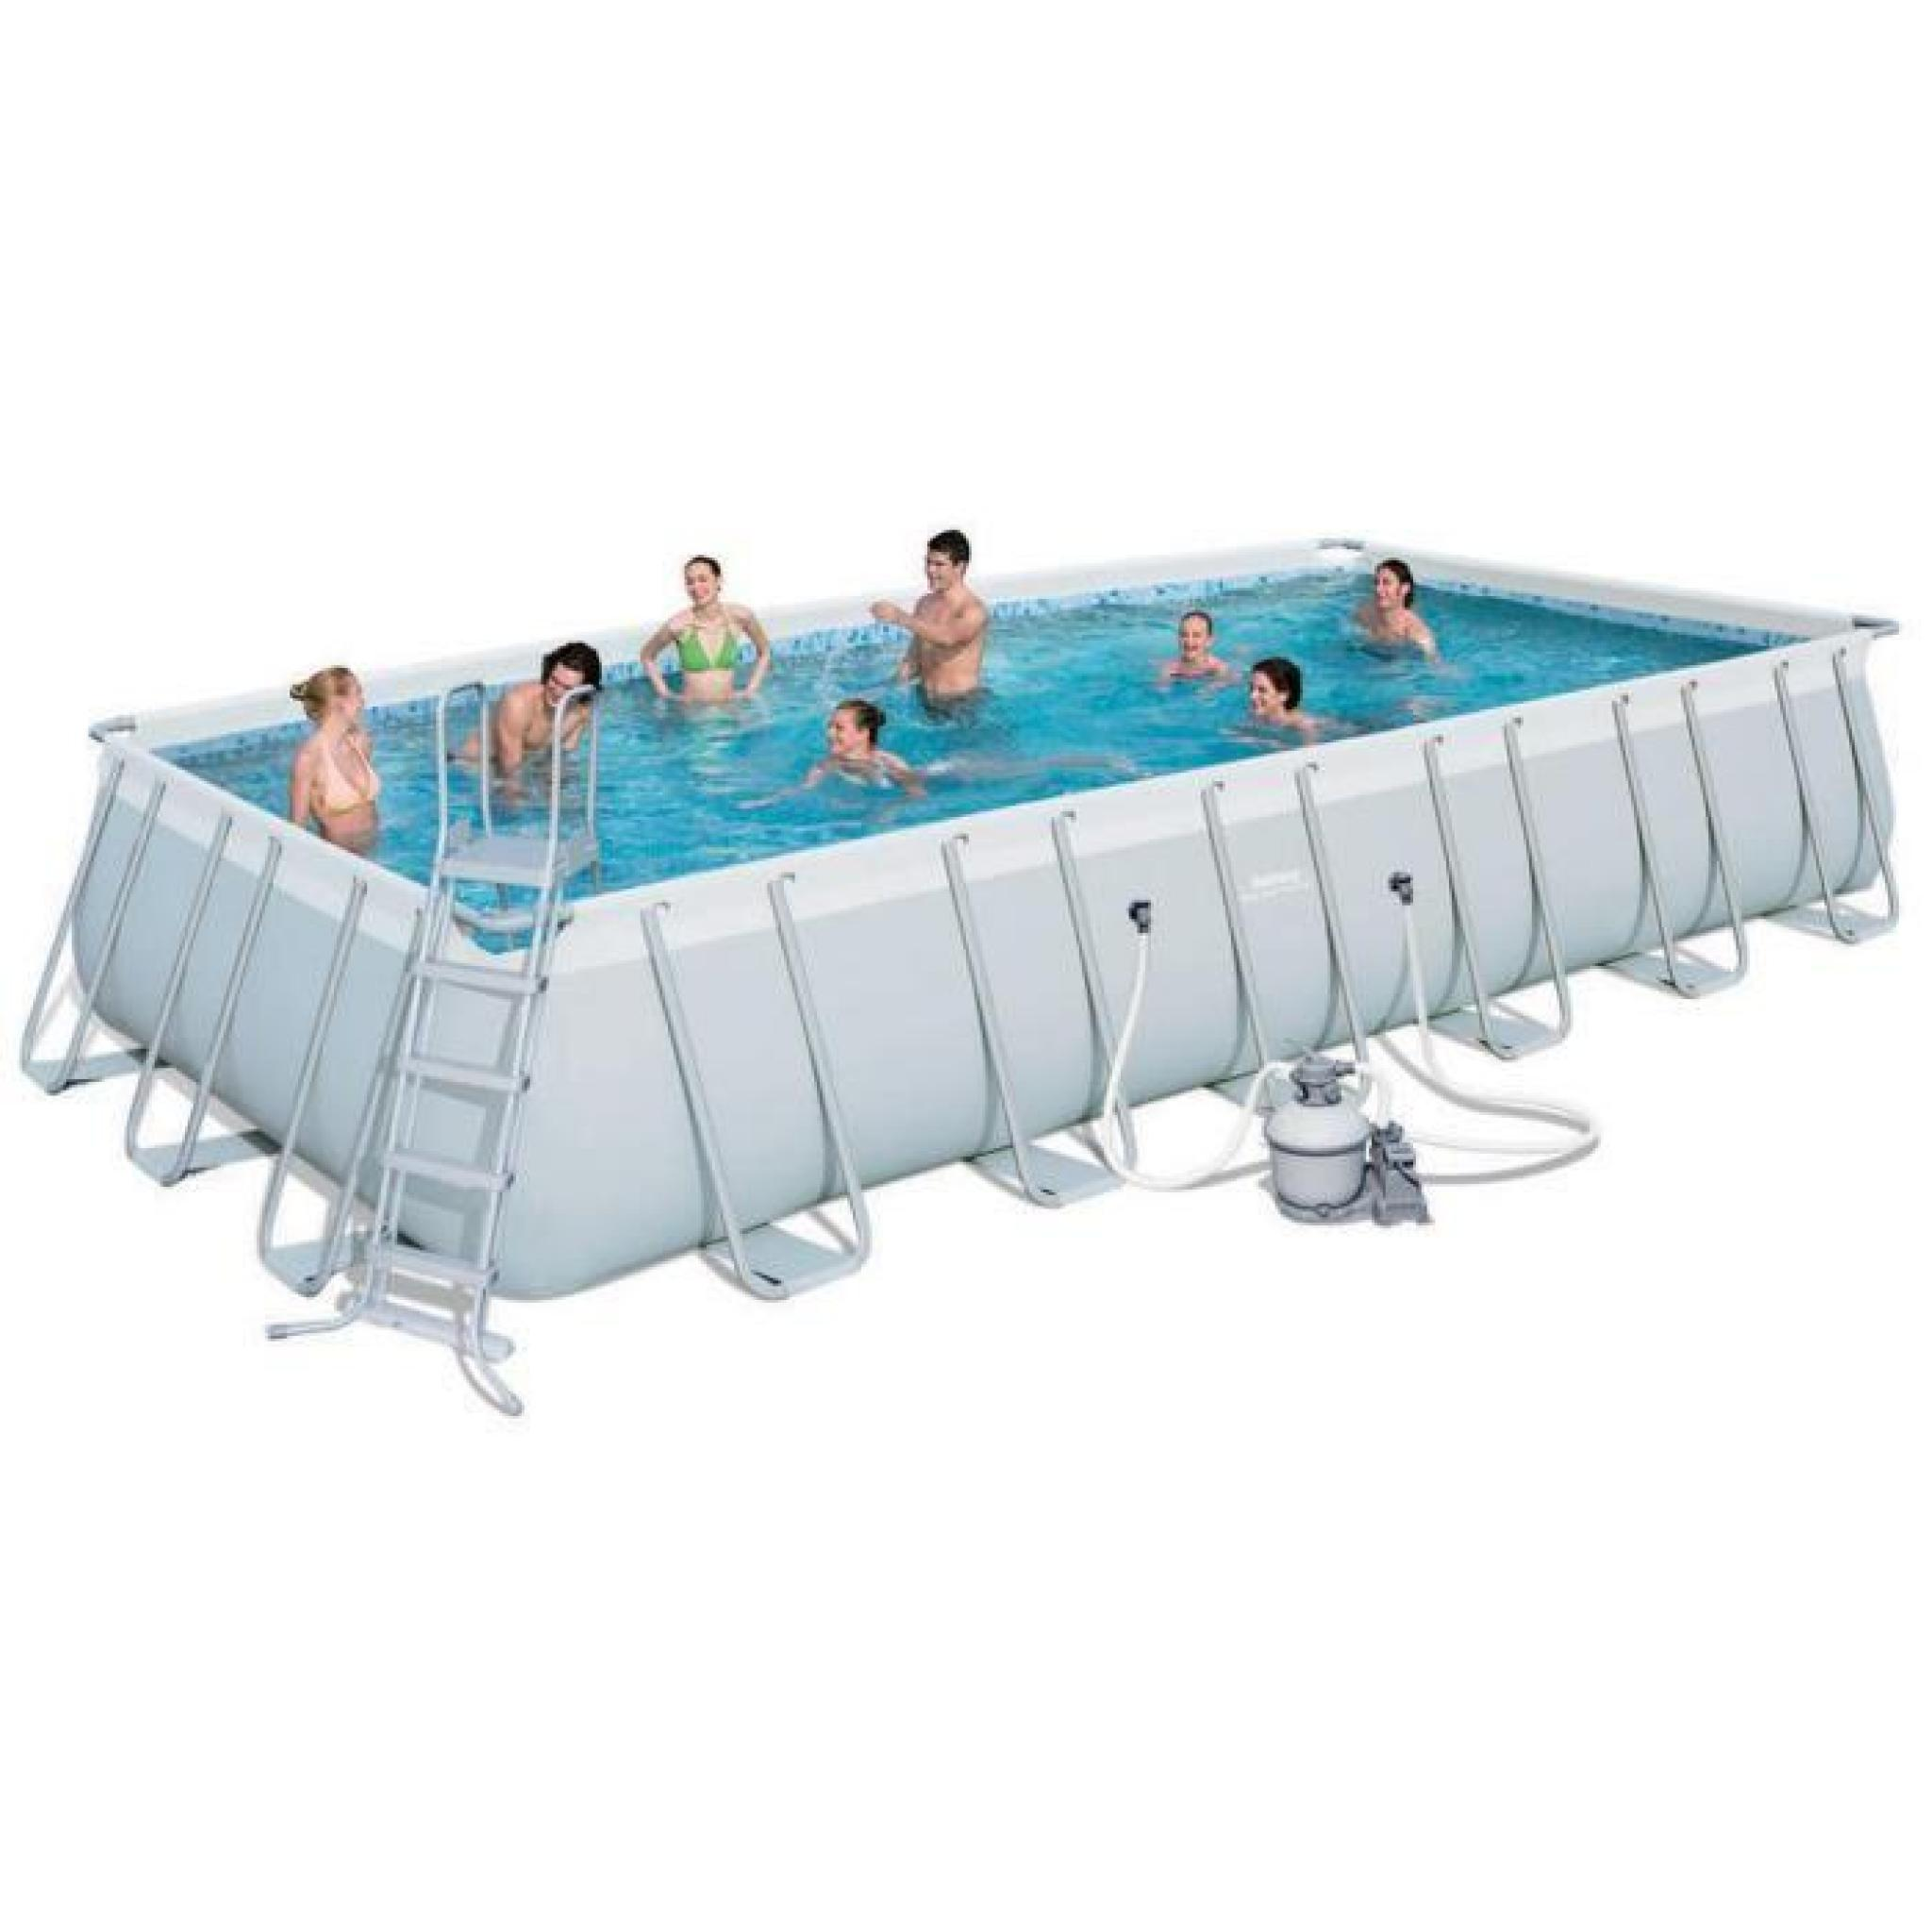 Piscine autoportante tubulaire power steel rectangl 4m12 bestway uni gris c - Piscine autoportante pas chere ...